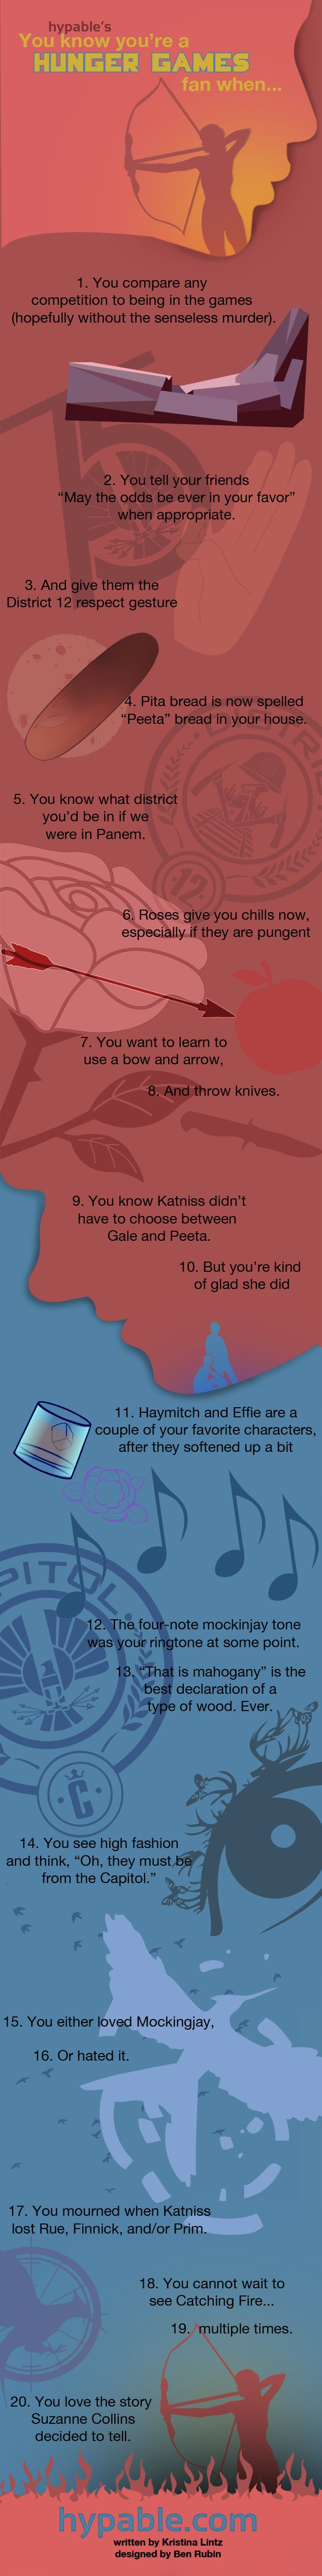 You know you're a Hunger Games fan when... (Infographic)